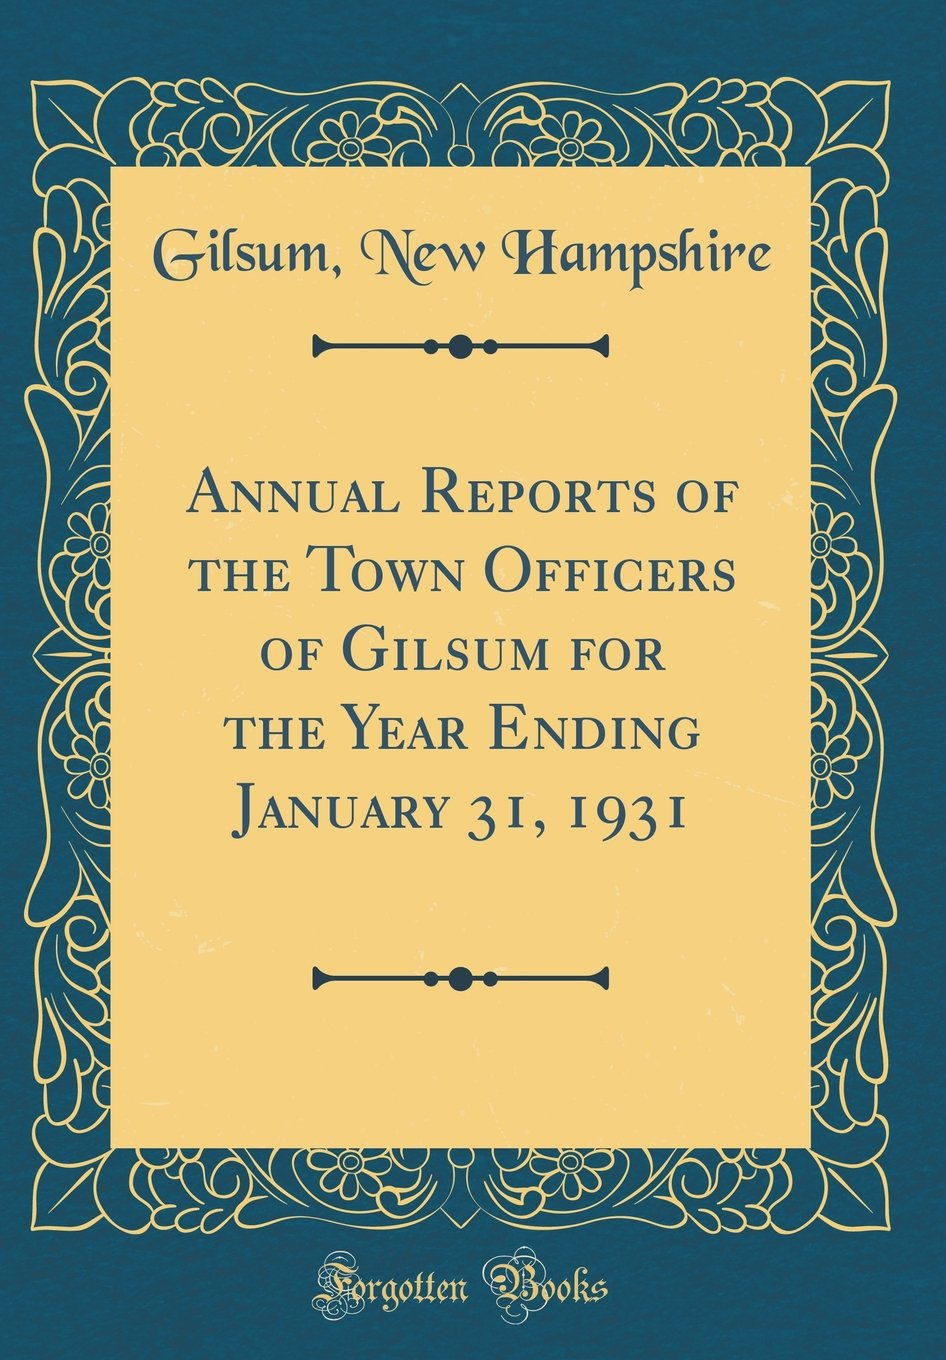 Annual Reports of the Town Officers of Gilsum for the Year Ending January 31, 1931 (Classic Reprint) ebook